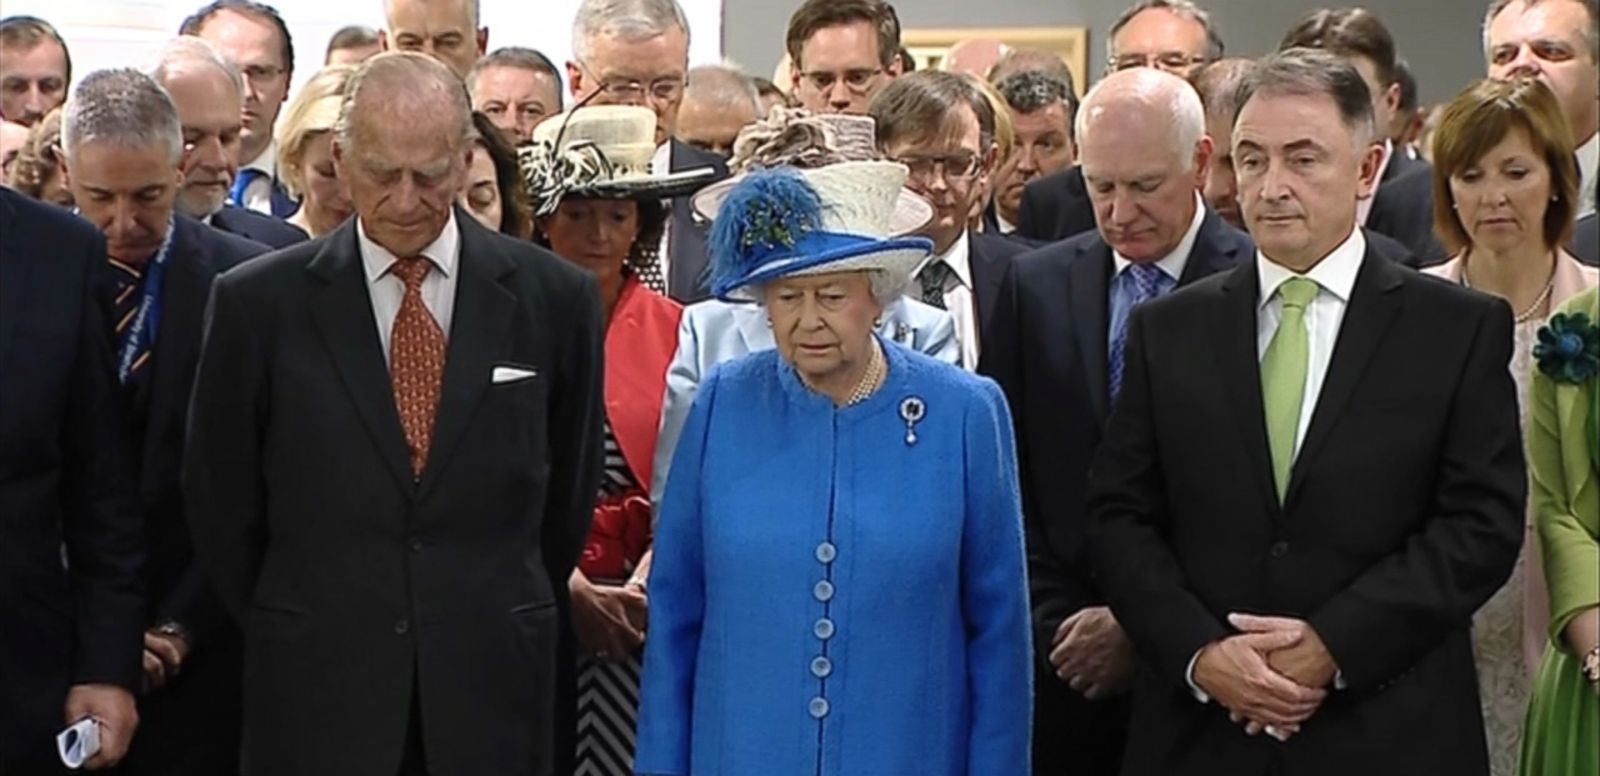 VIDEO: The Queen and the Duke of Edinburgh were visiting Glasgow when they paused to honor the victims of last week's attack.